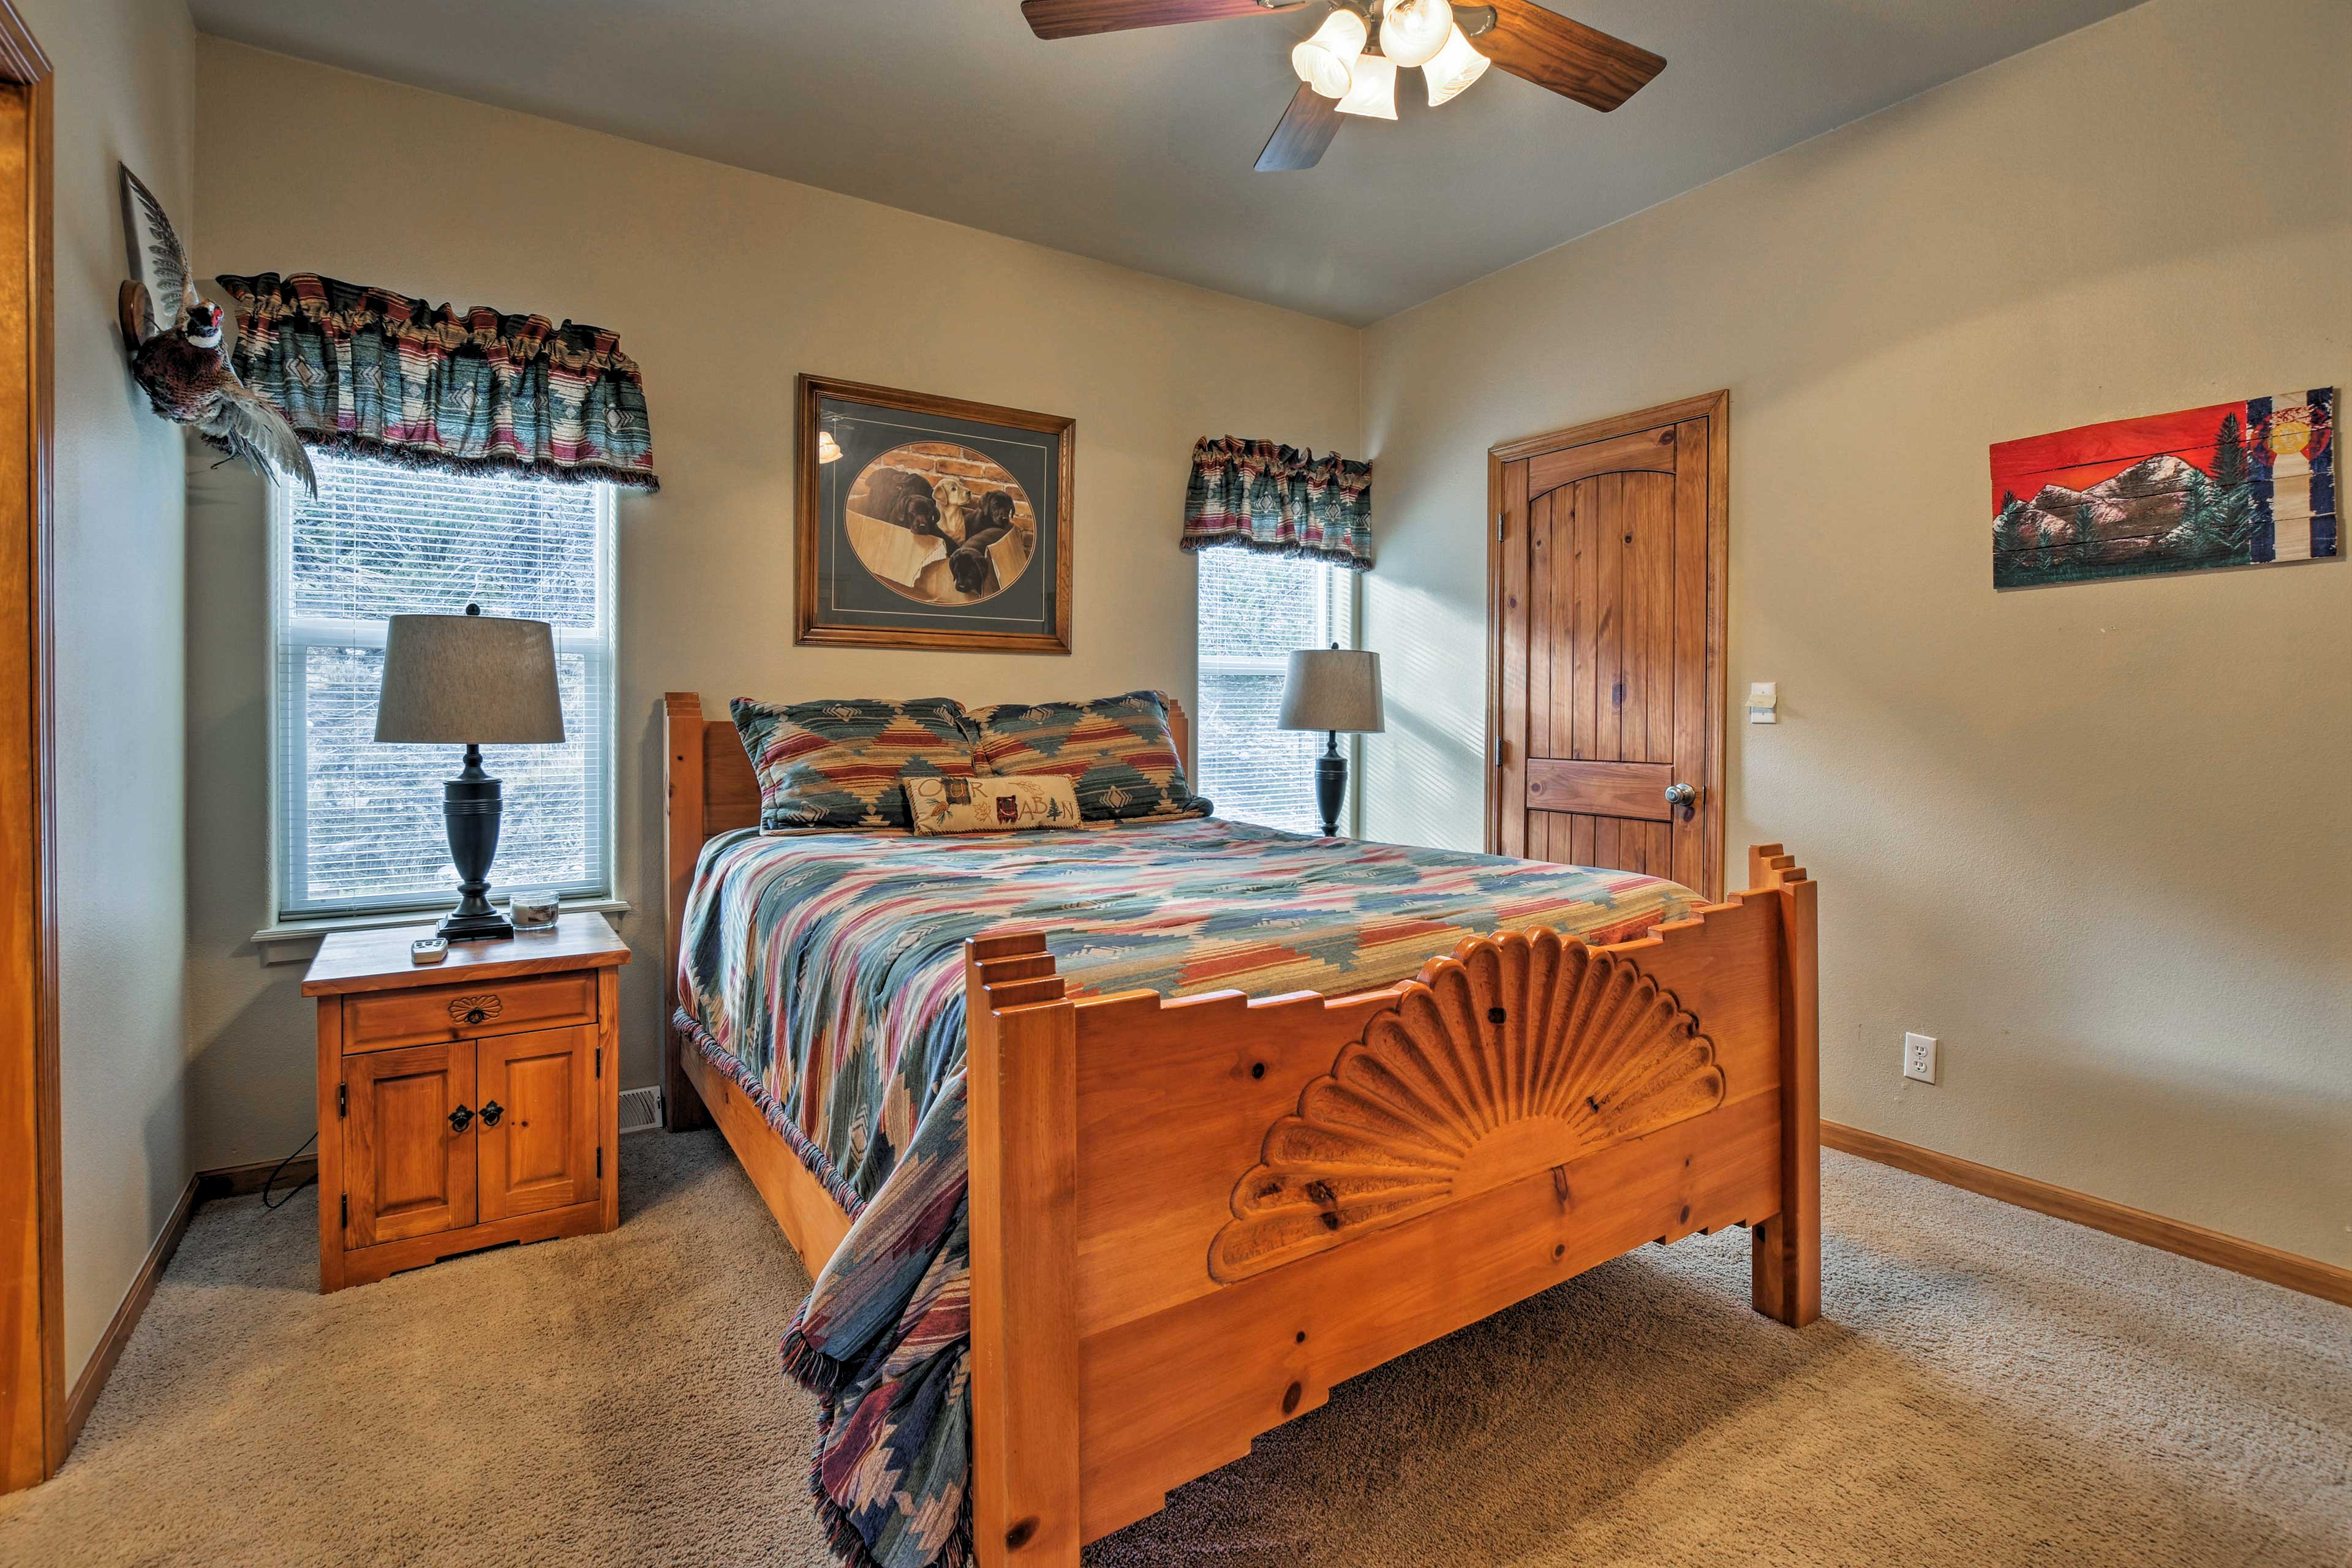 The cabin features 3 full bedrooms and 2 bathrooms.